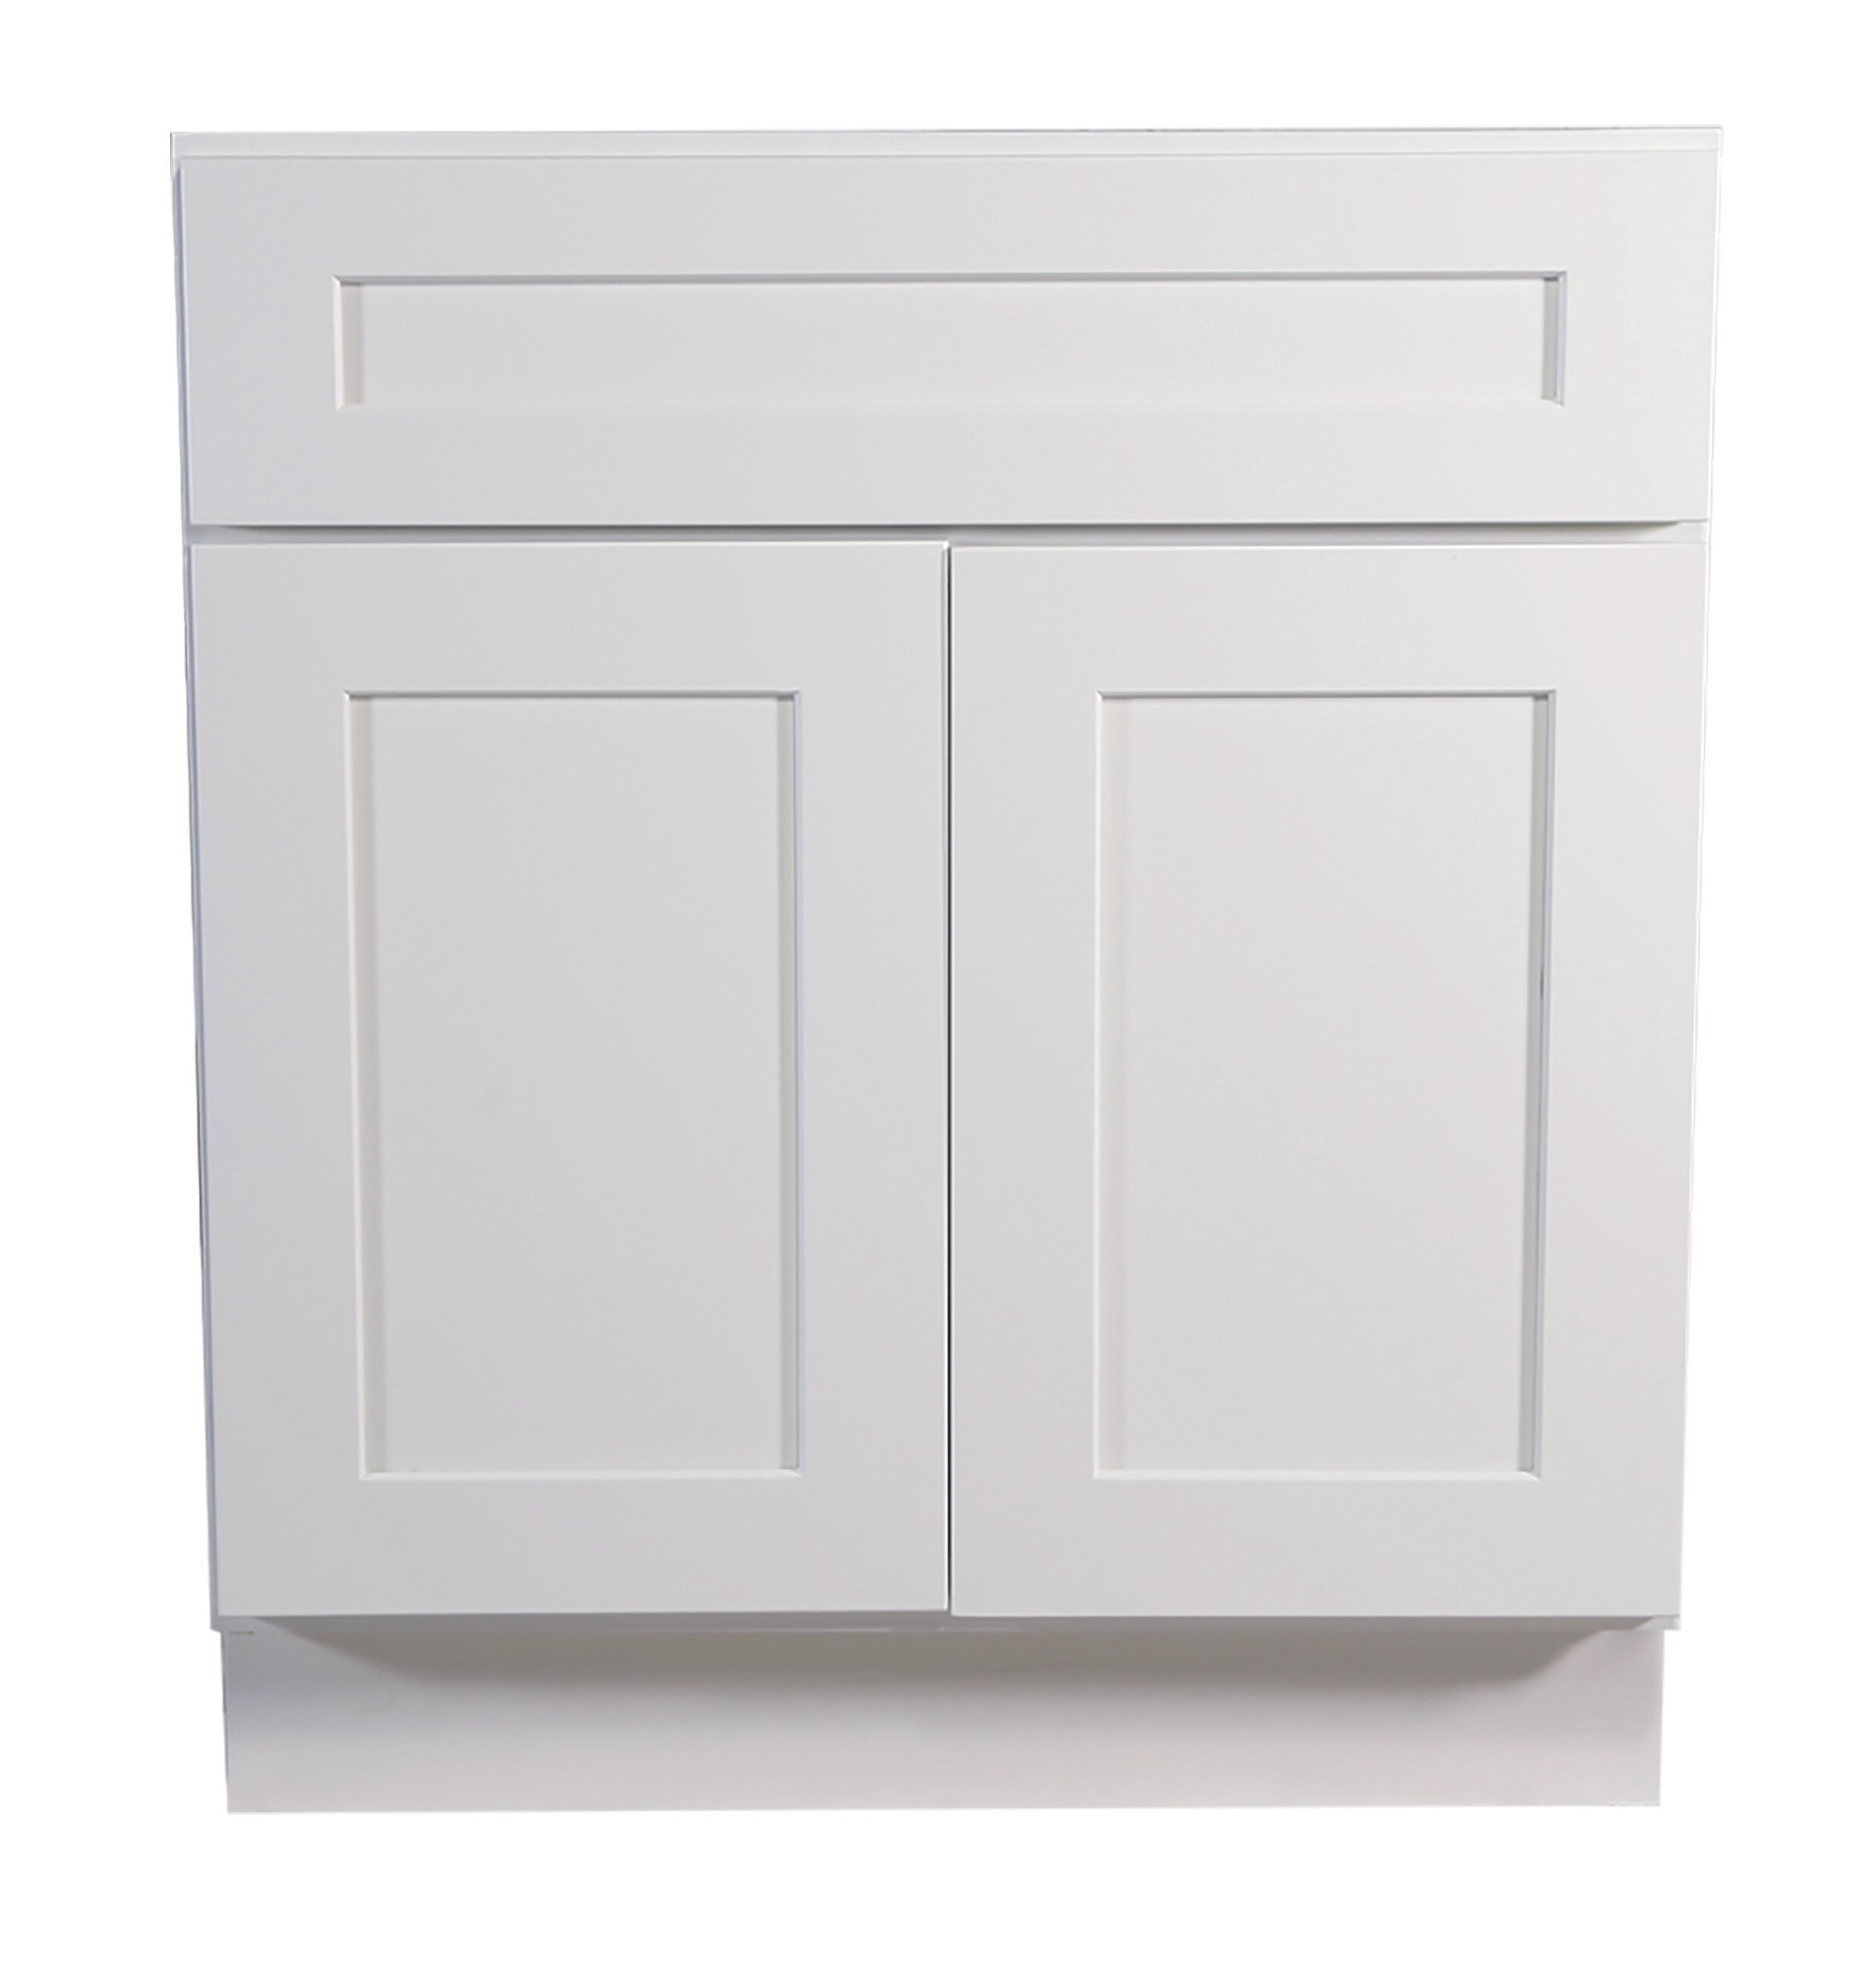 Ebern Designs Frits Ready To Assemble 24 X 34 5 X 24 In Base Cabinet Style 2 Door With 1 Drawer In White Wayfair